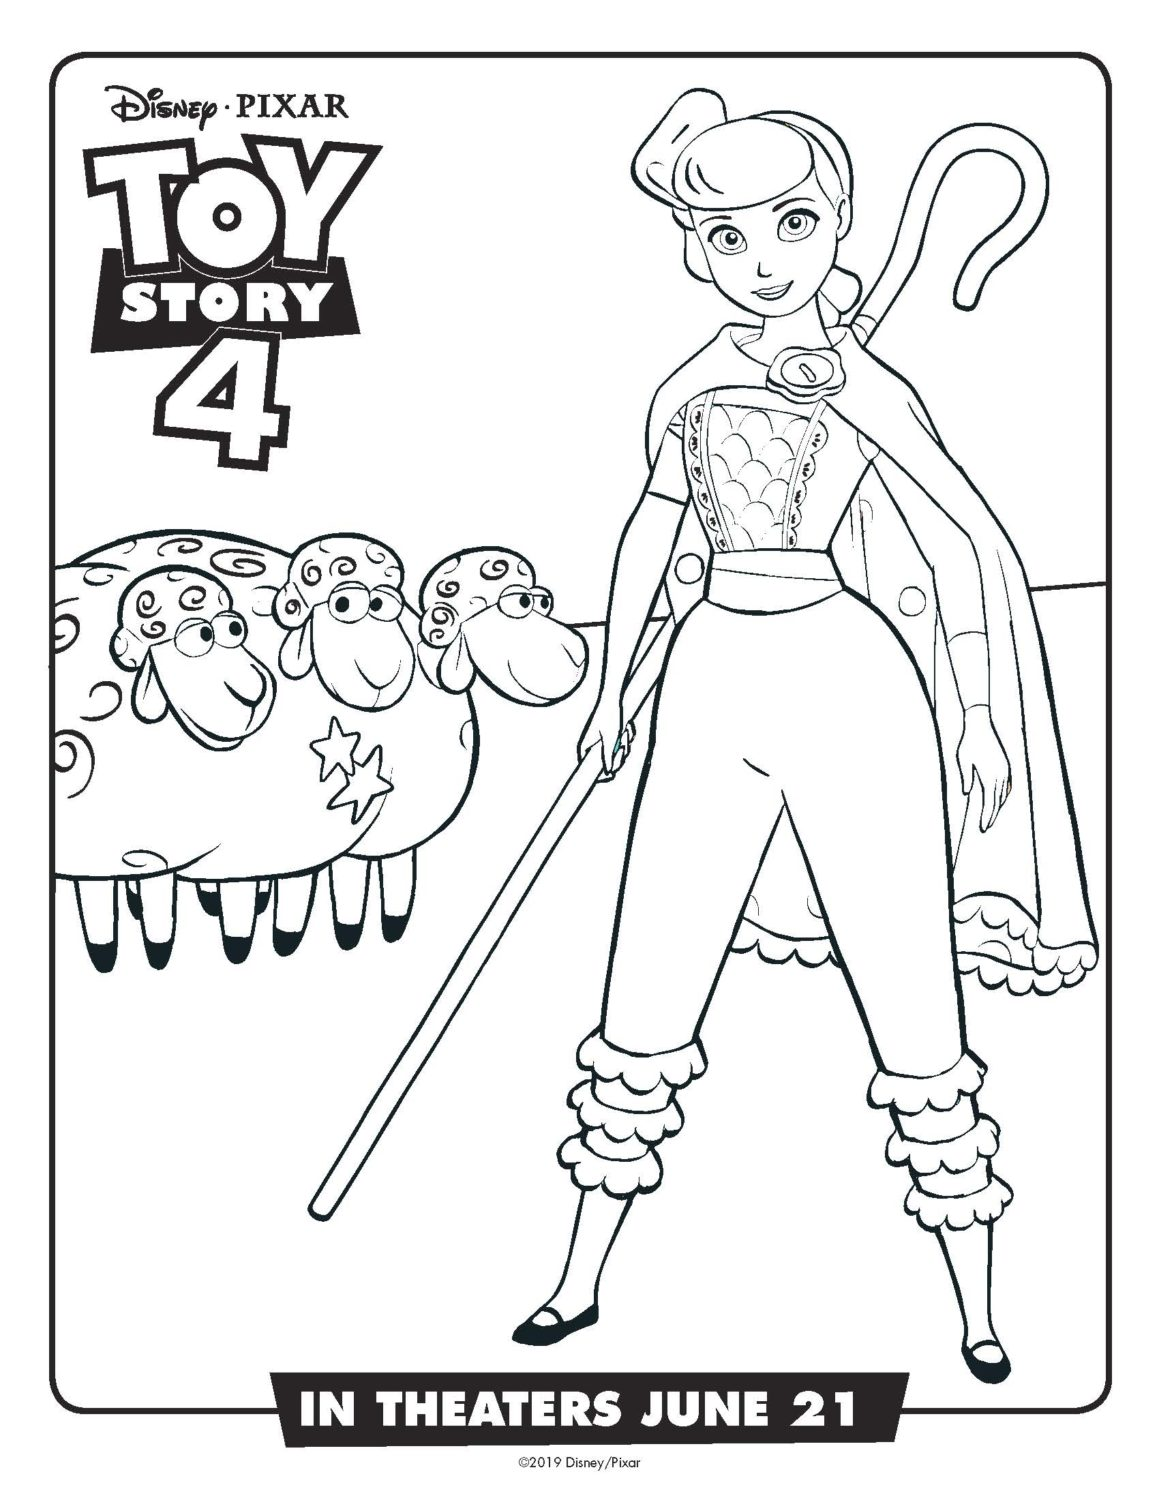 Toy Story 4 Coloring Pages And Activity Sheets